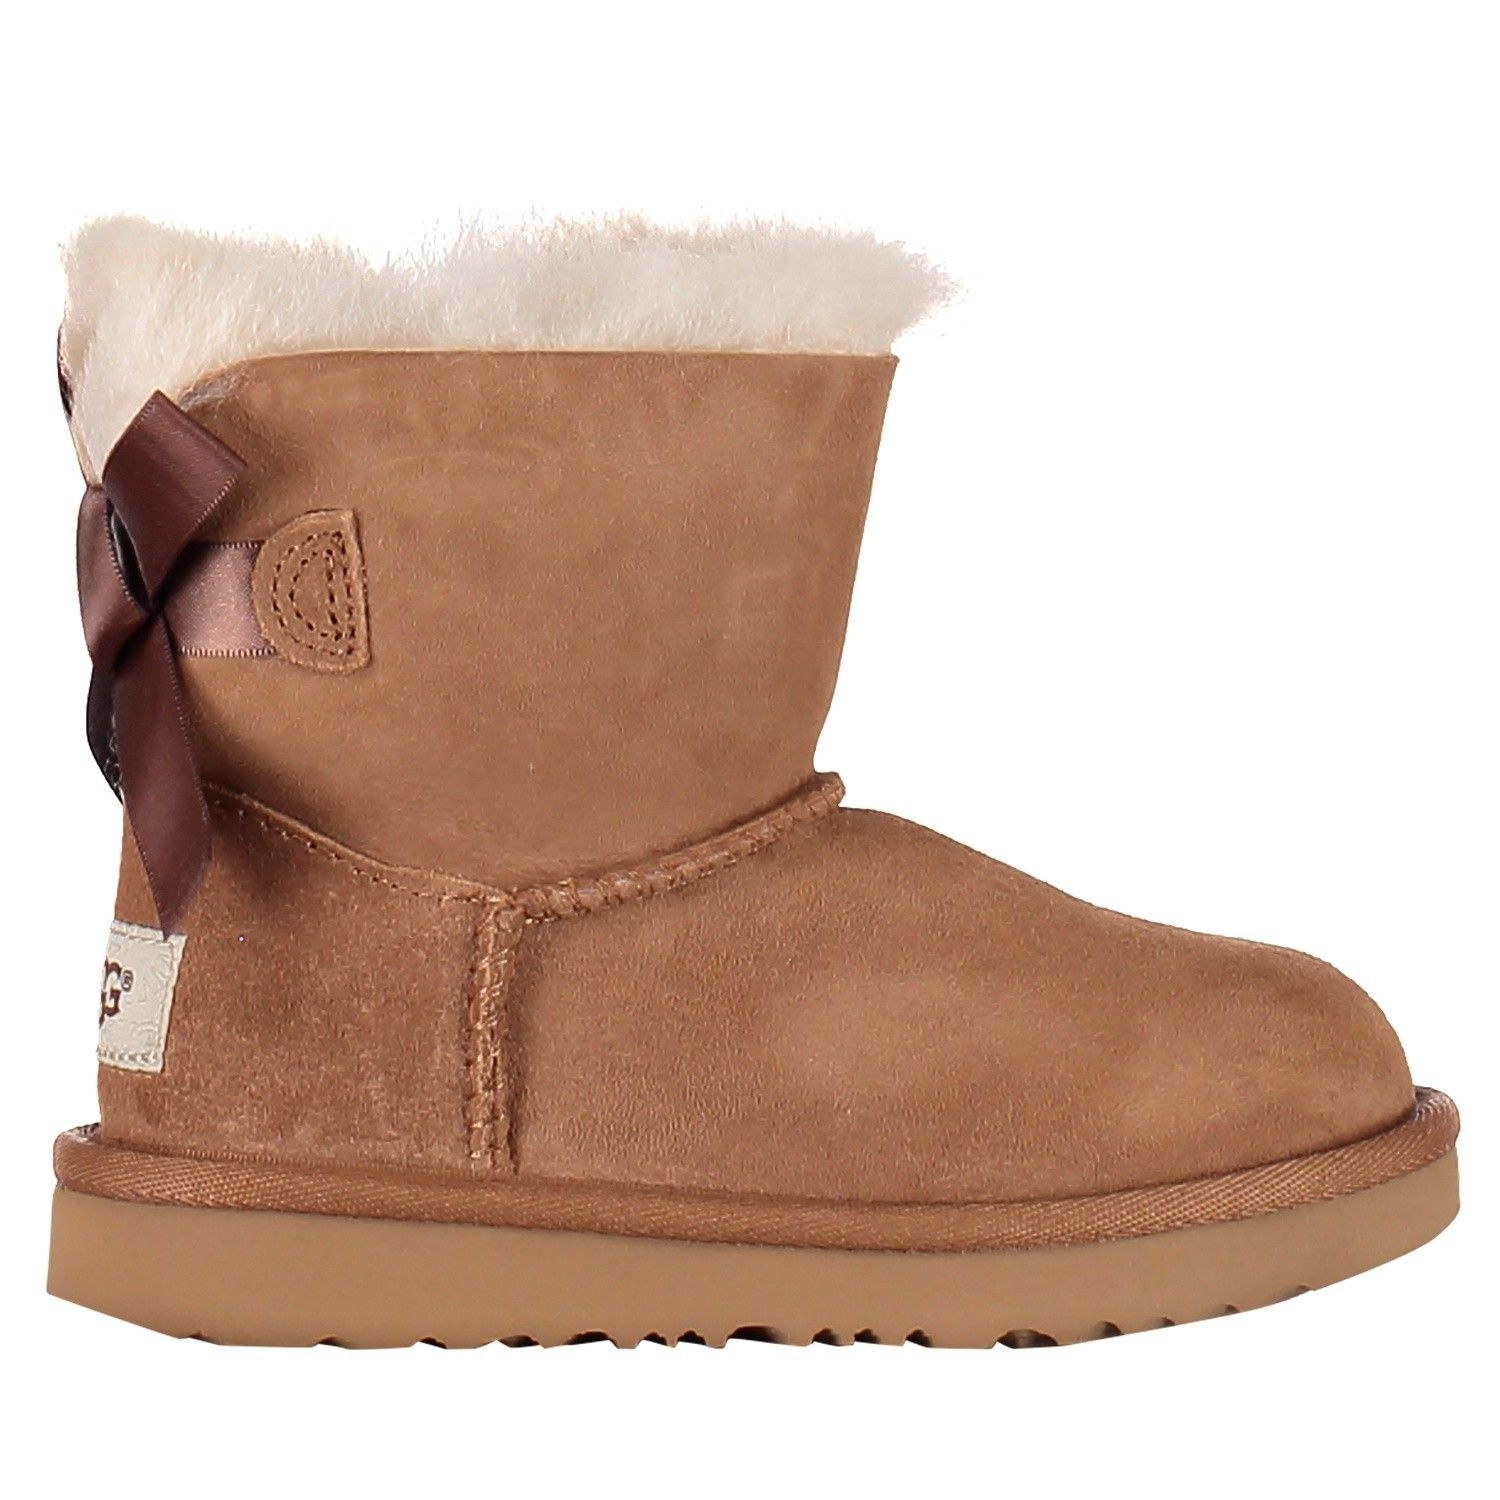 Picture of UGG 1017397 kids boots camel